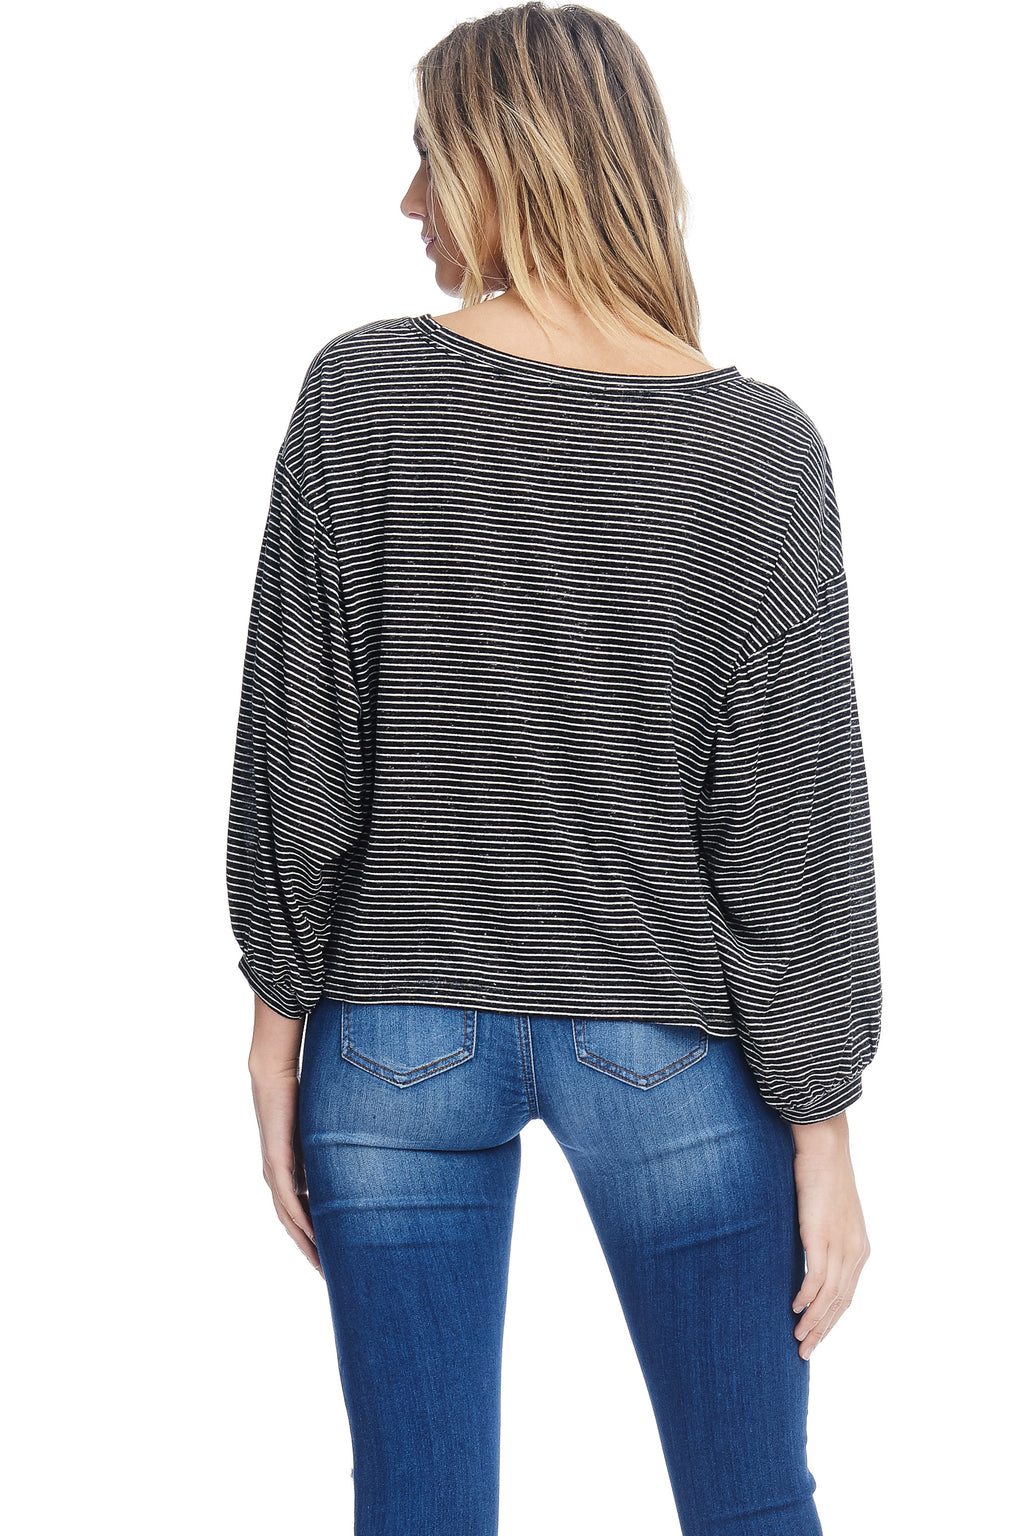 W18-034 Striped Bishop Sleeve Blouse